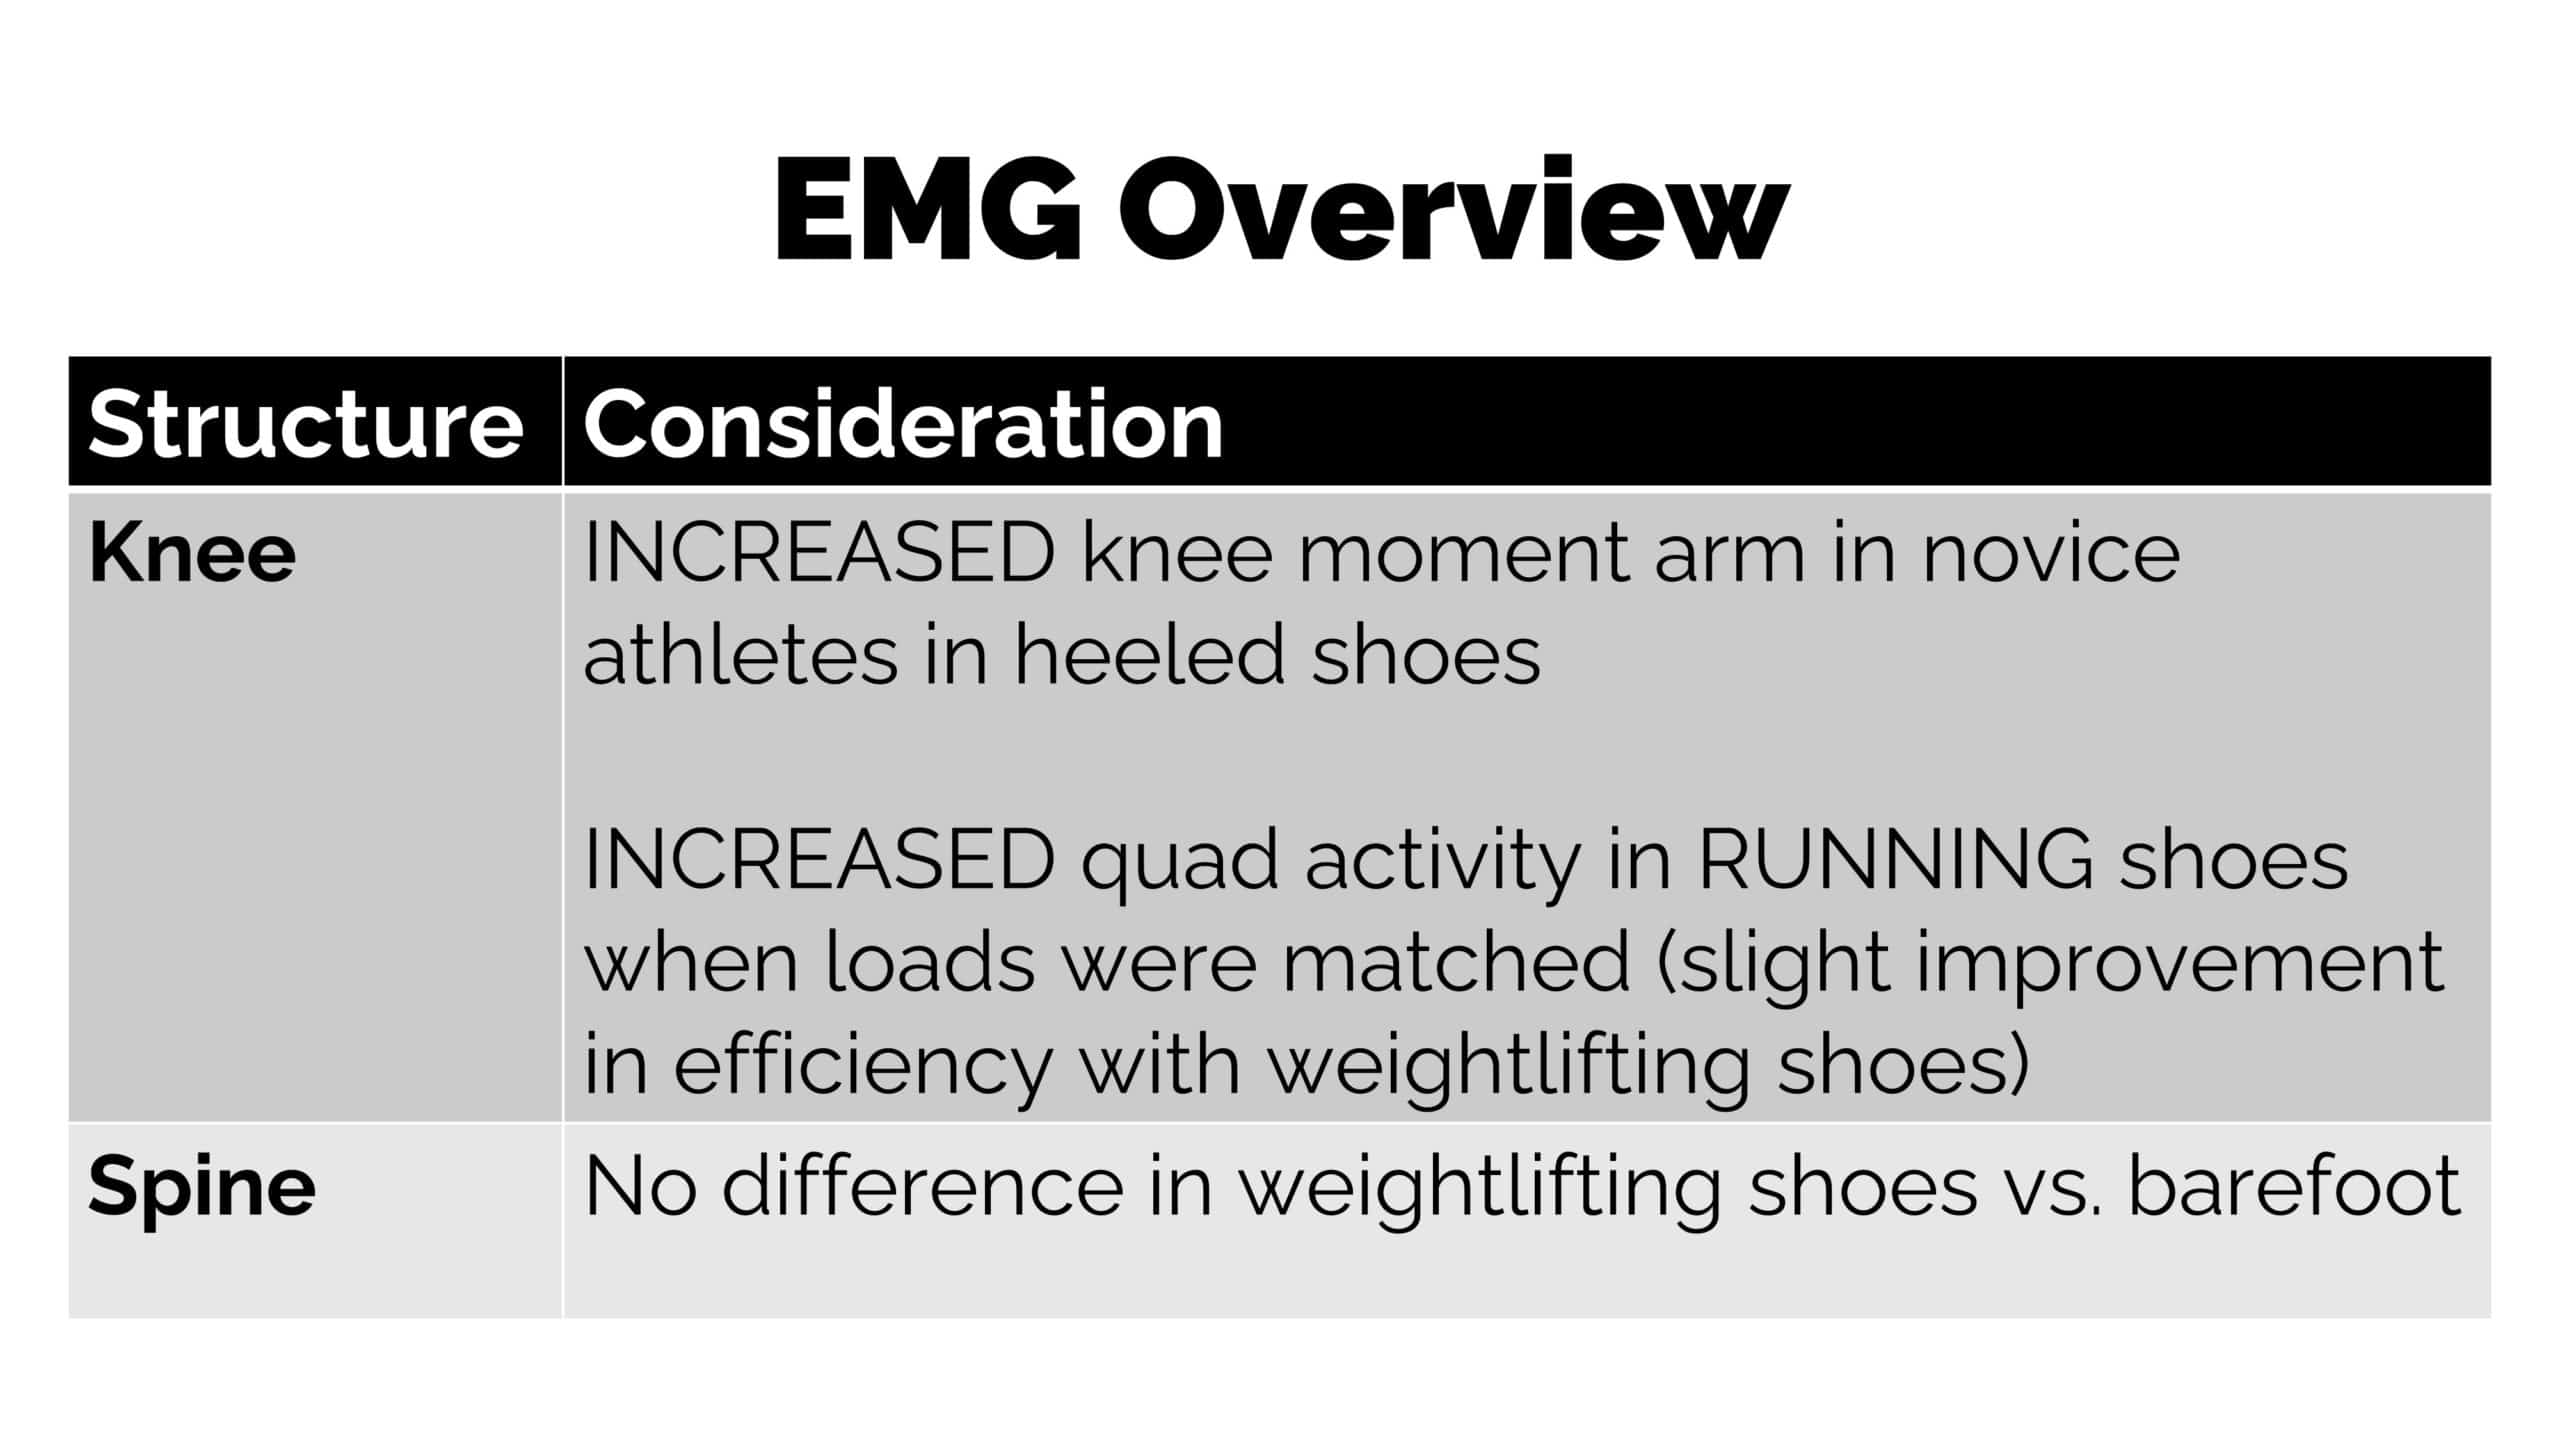 EMG weightlifting shoes